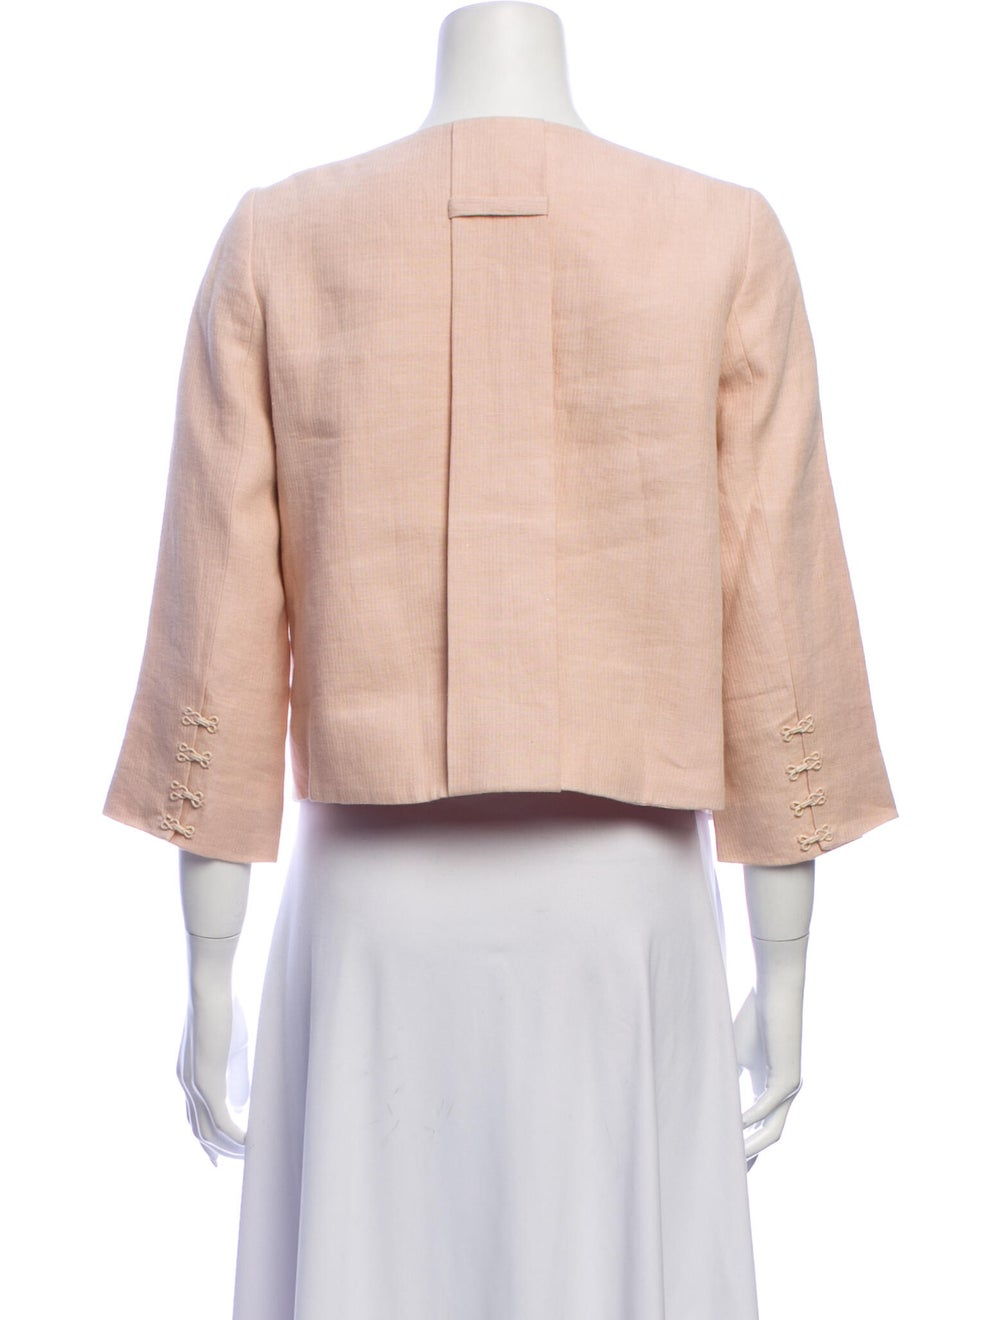 Robert Rodriguez Linen Evening Jacket - image 3